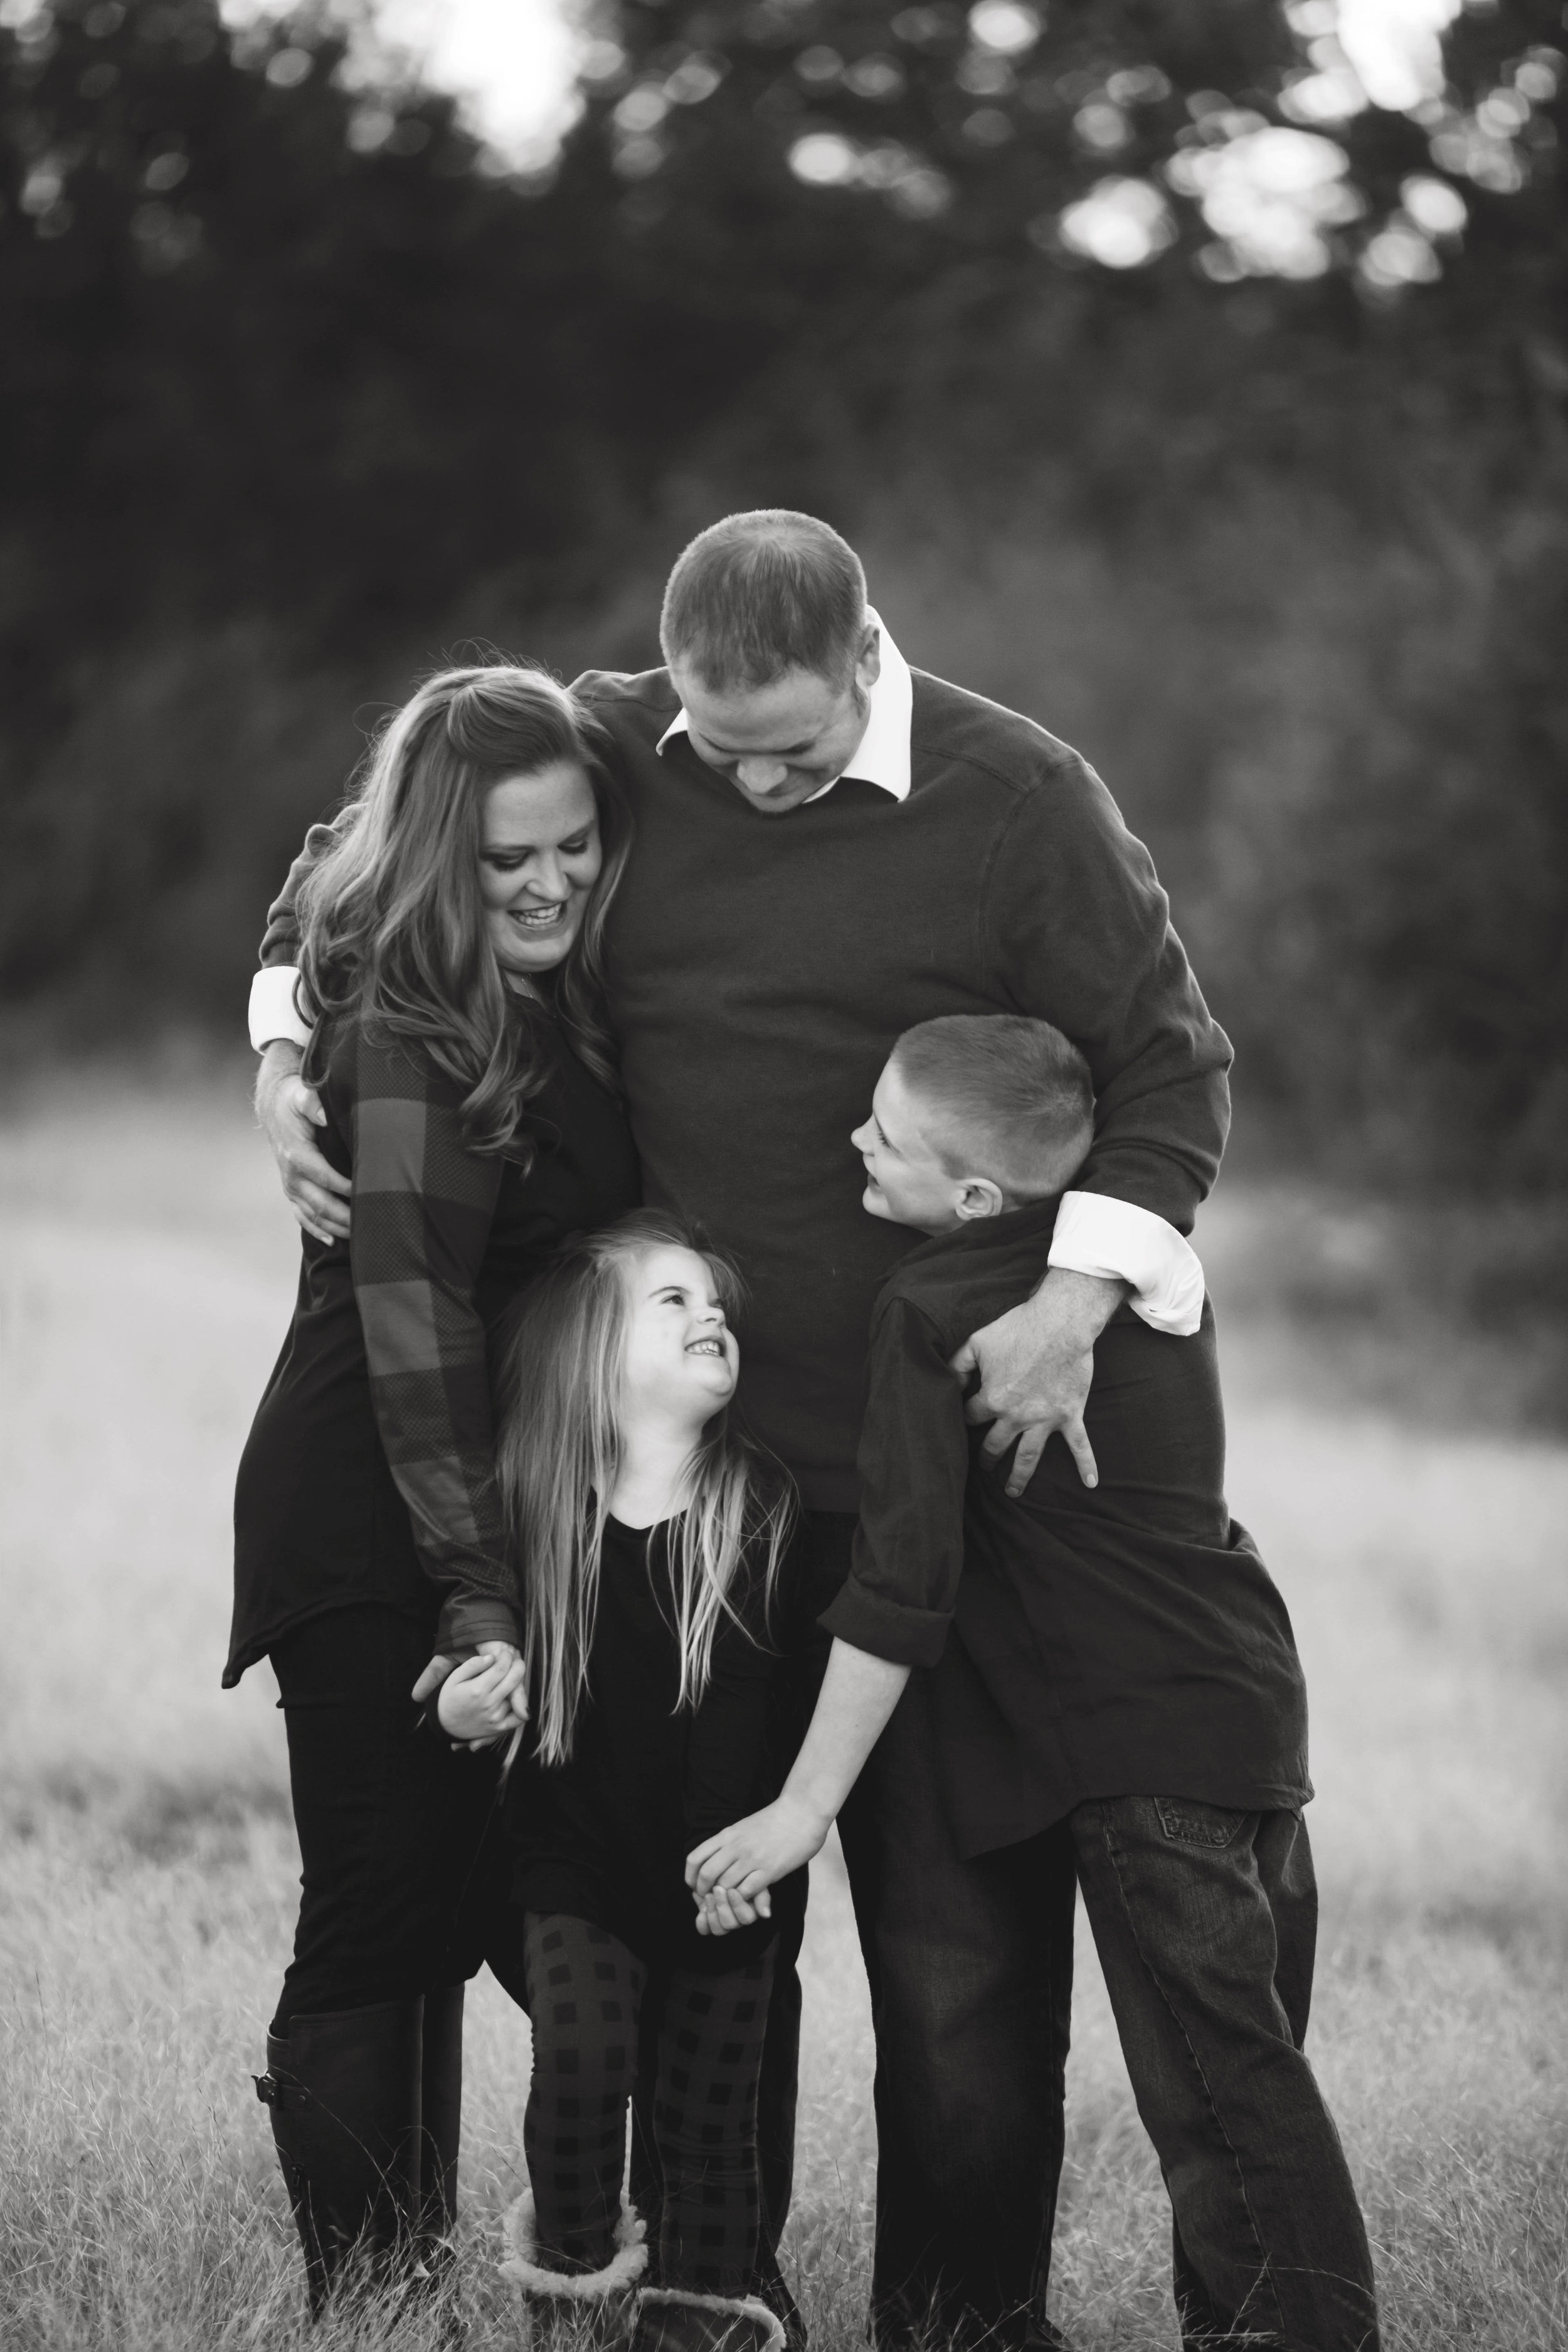 Marble_Falls_Sternad_Family_Photographer_Jenna_Petty_06.jpg